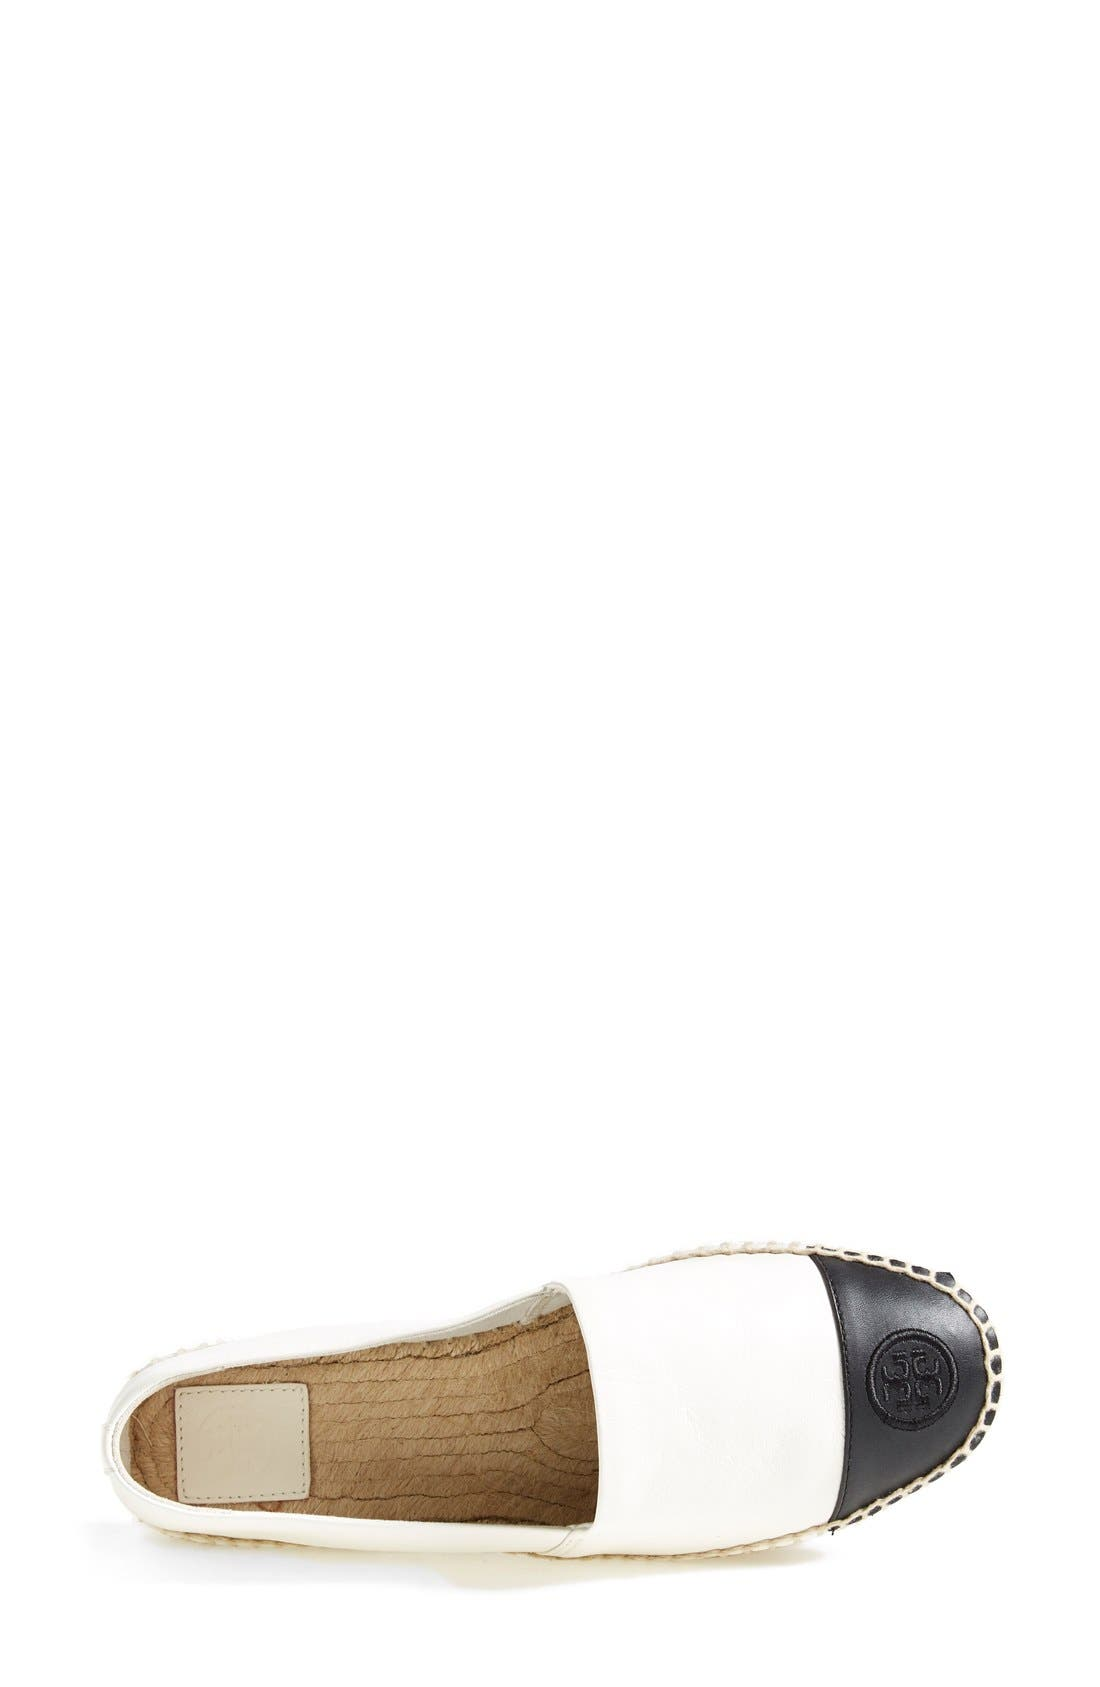 Alternate Image 3  - Tory Burch Colorblock Espadrille Flat (Women)